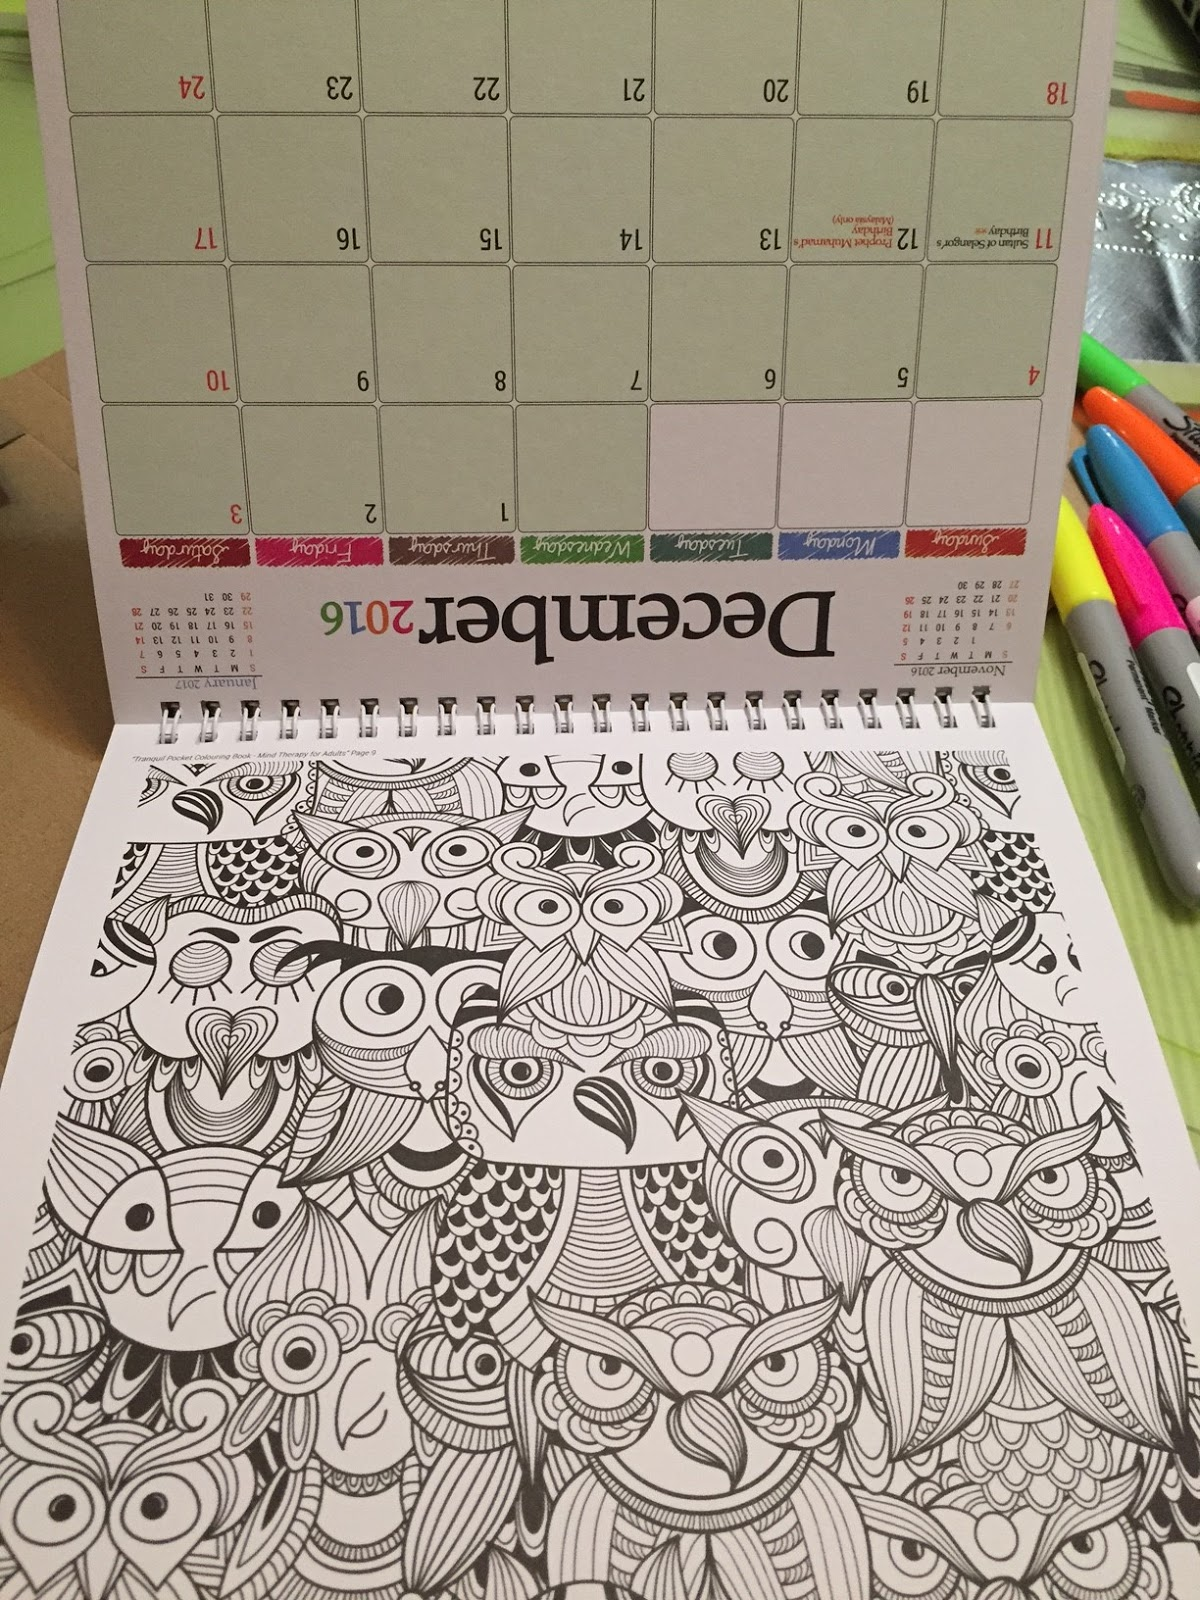 What A Good Deed It Is To Buy Copy So Hurry Folks For UNICEF And You Could Enjoy Yourself Colouring